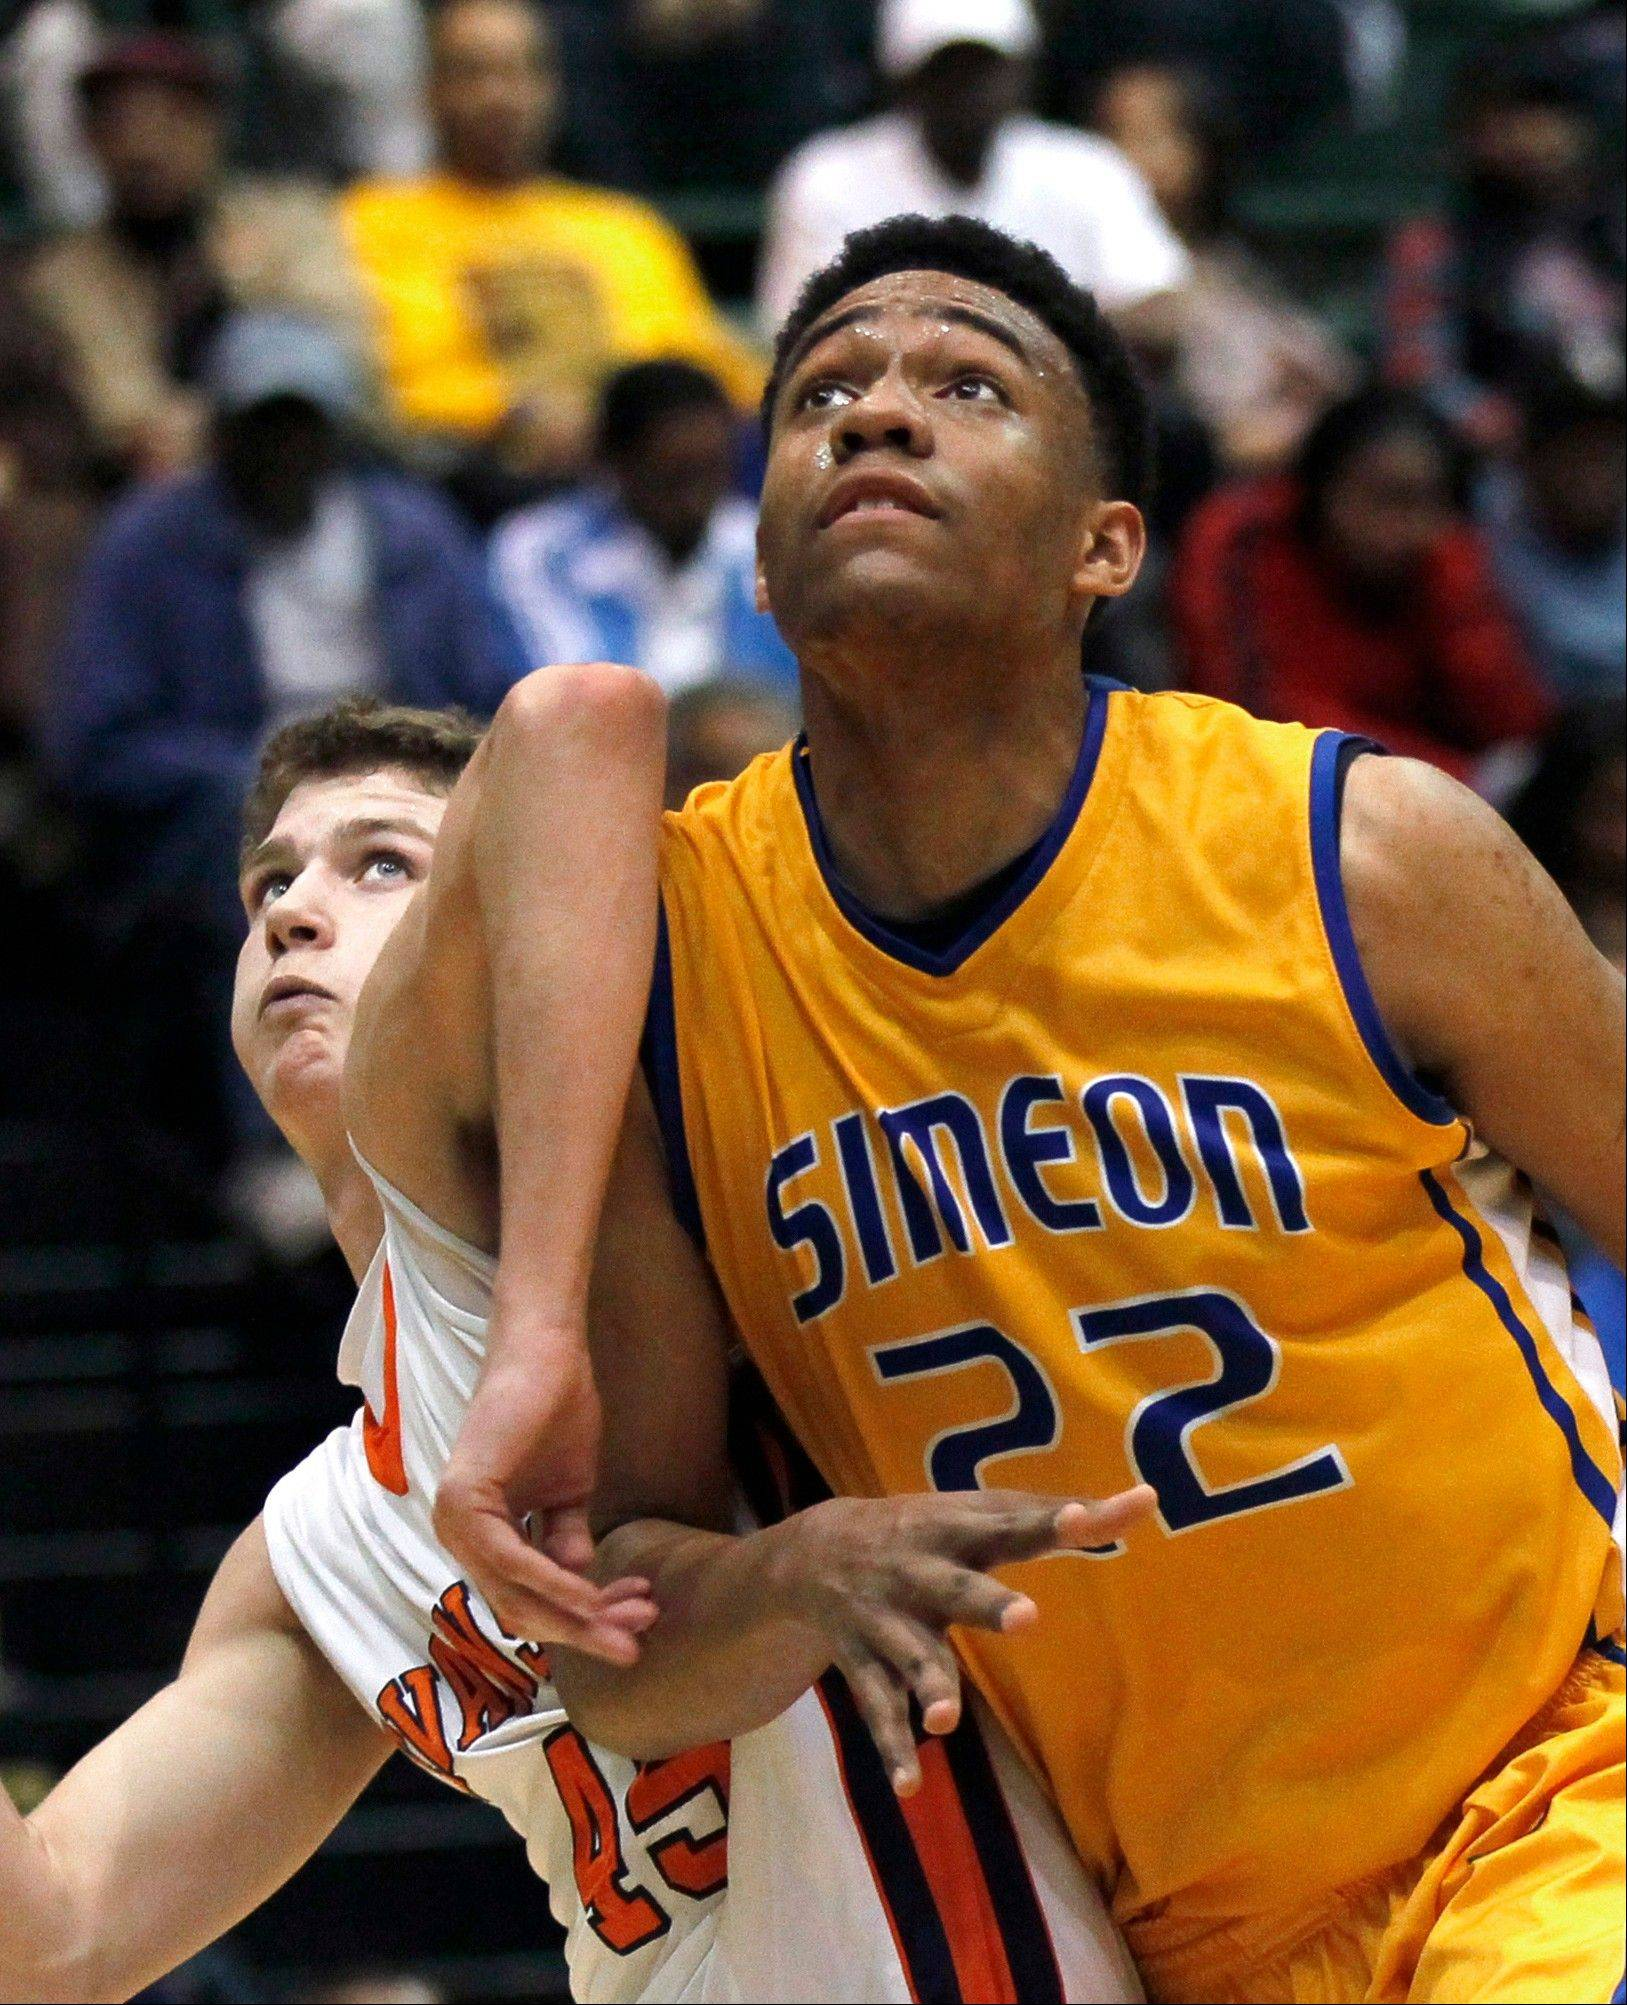 Simeon Career Academy's forward Jabari Parker, who ranks at the No. 1 player in the country heading into his senior year, has included DePaul among 10 schools he's considering.